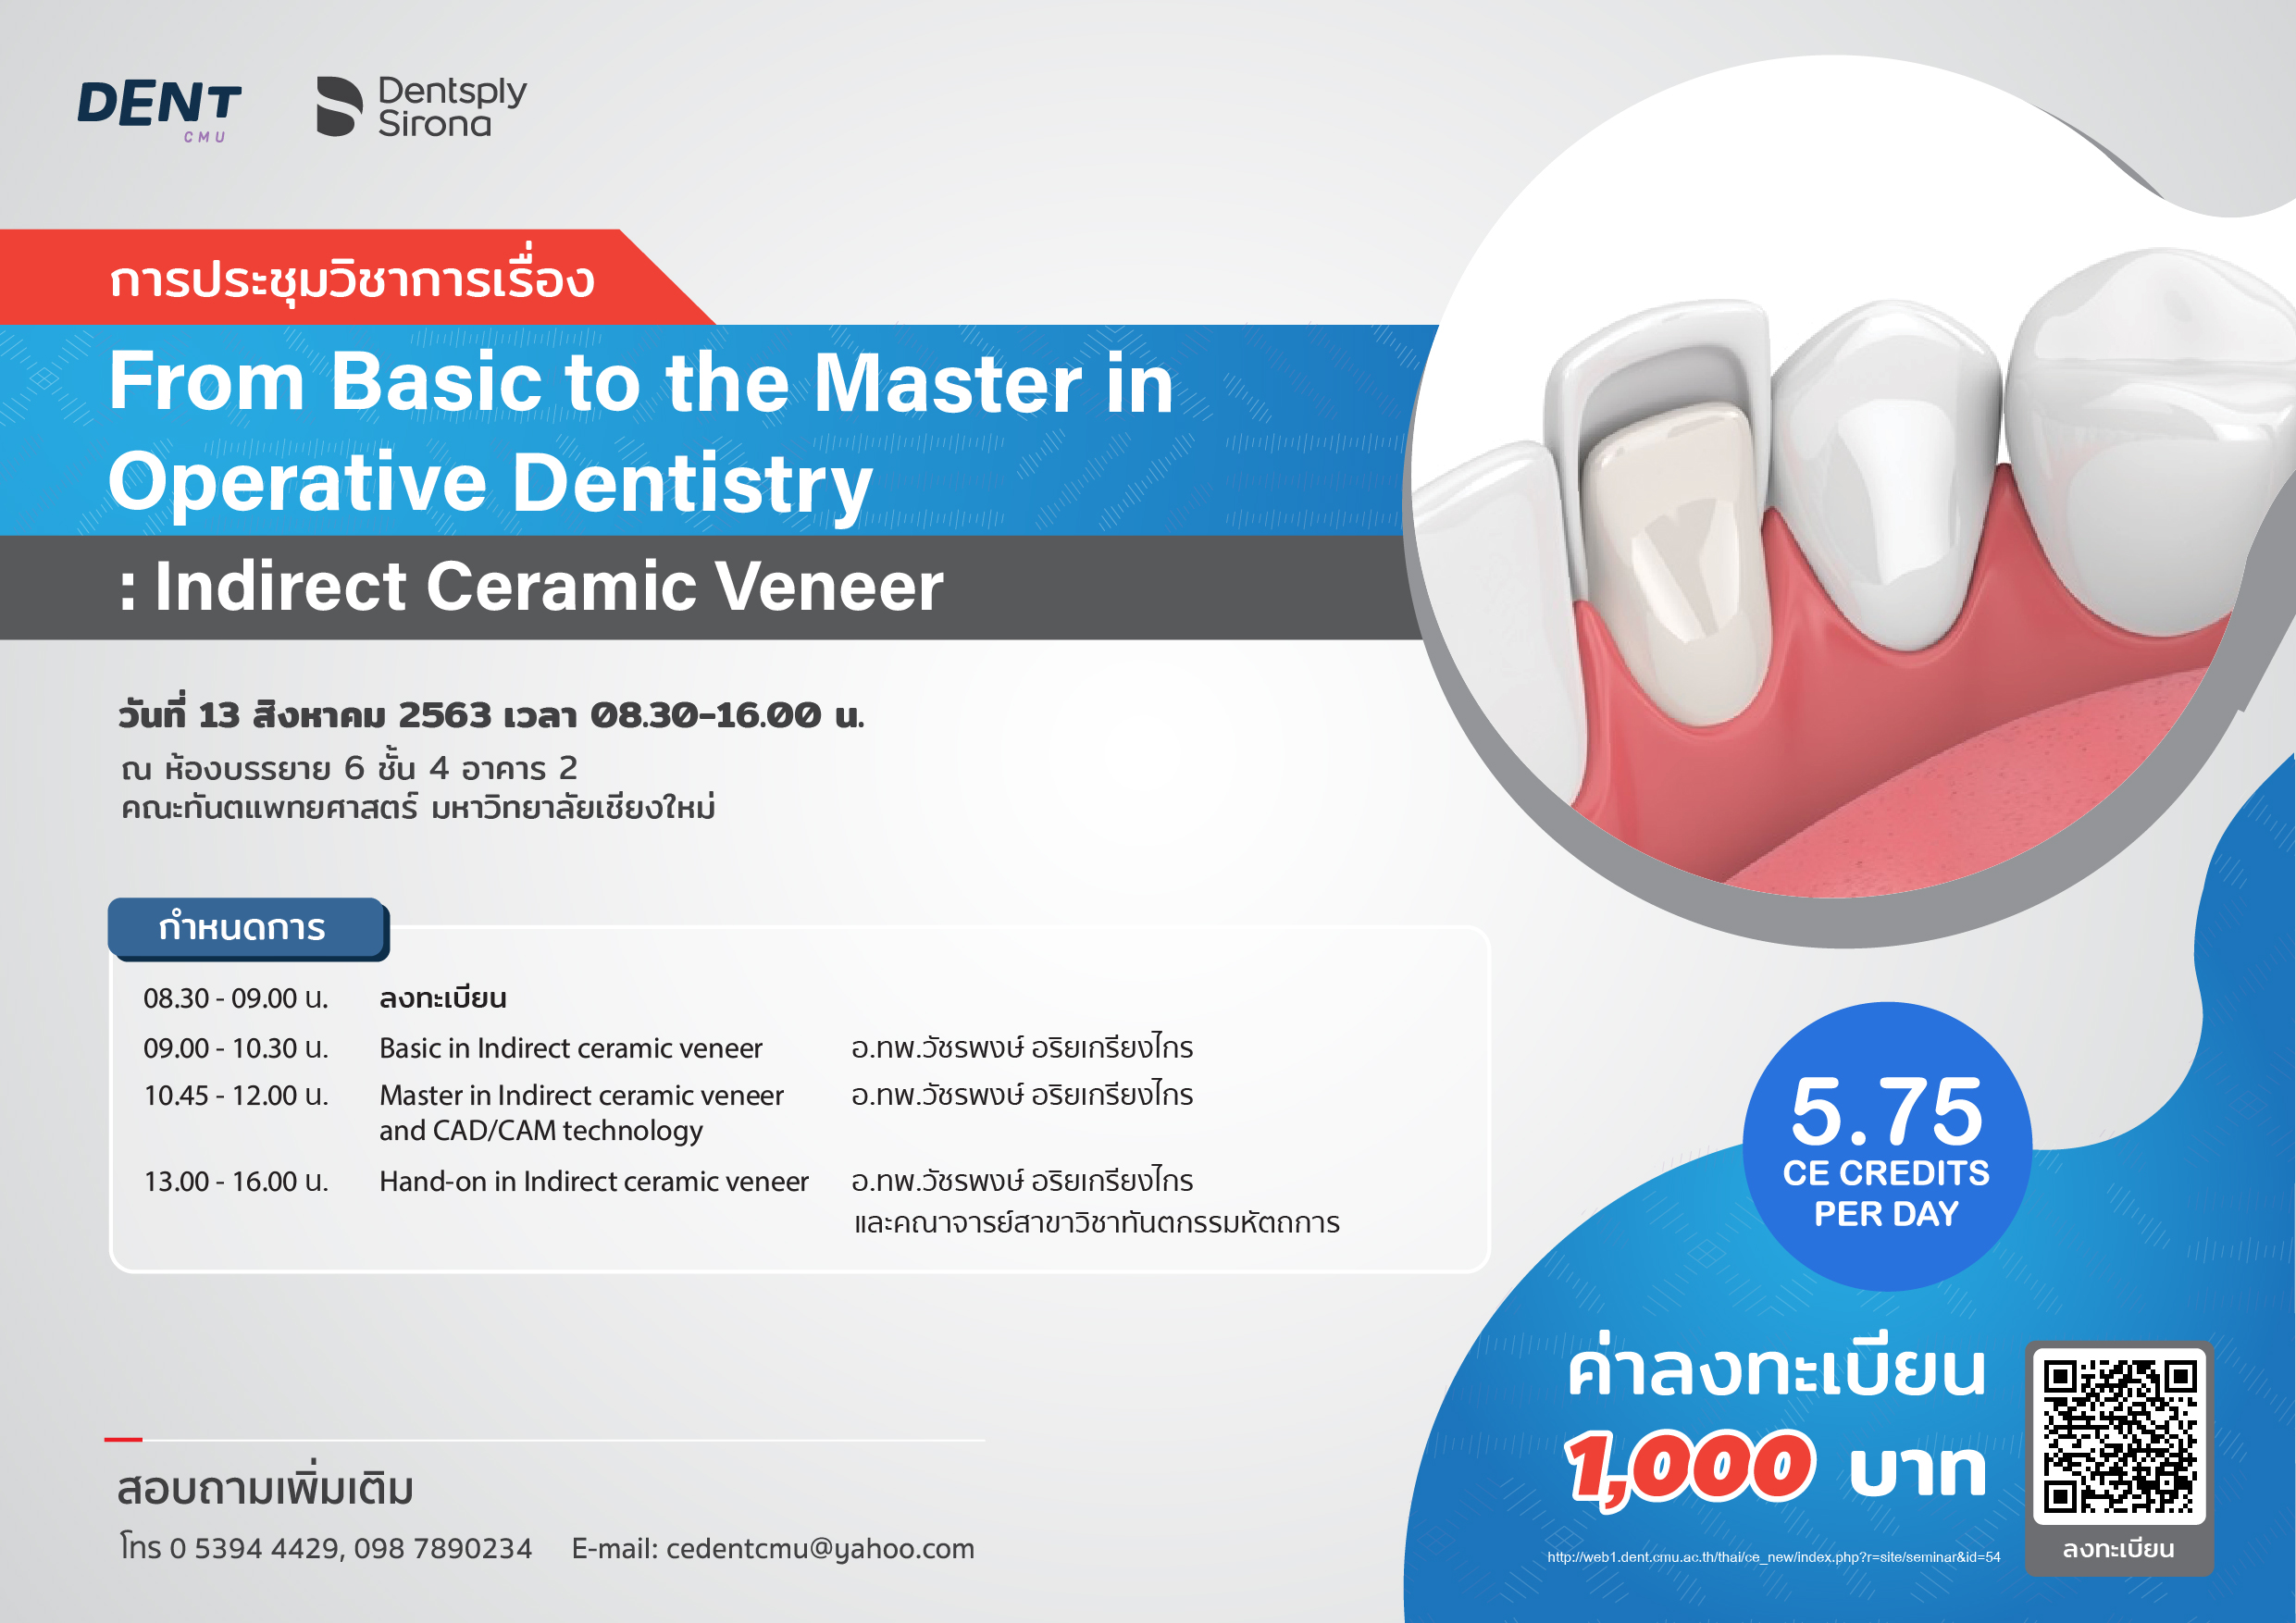 From Basic to the Master in Operative Dentistry: Indirect Ceramic Veneer (13 สิงหาคม 2563)